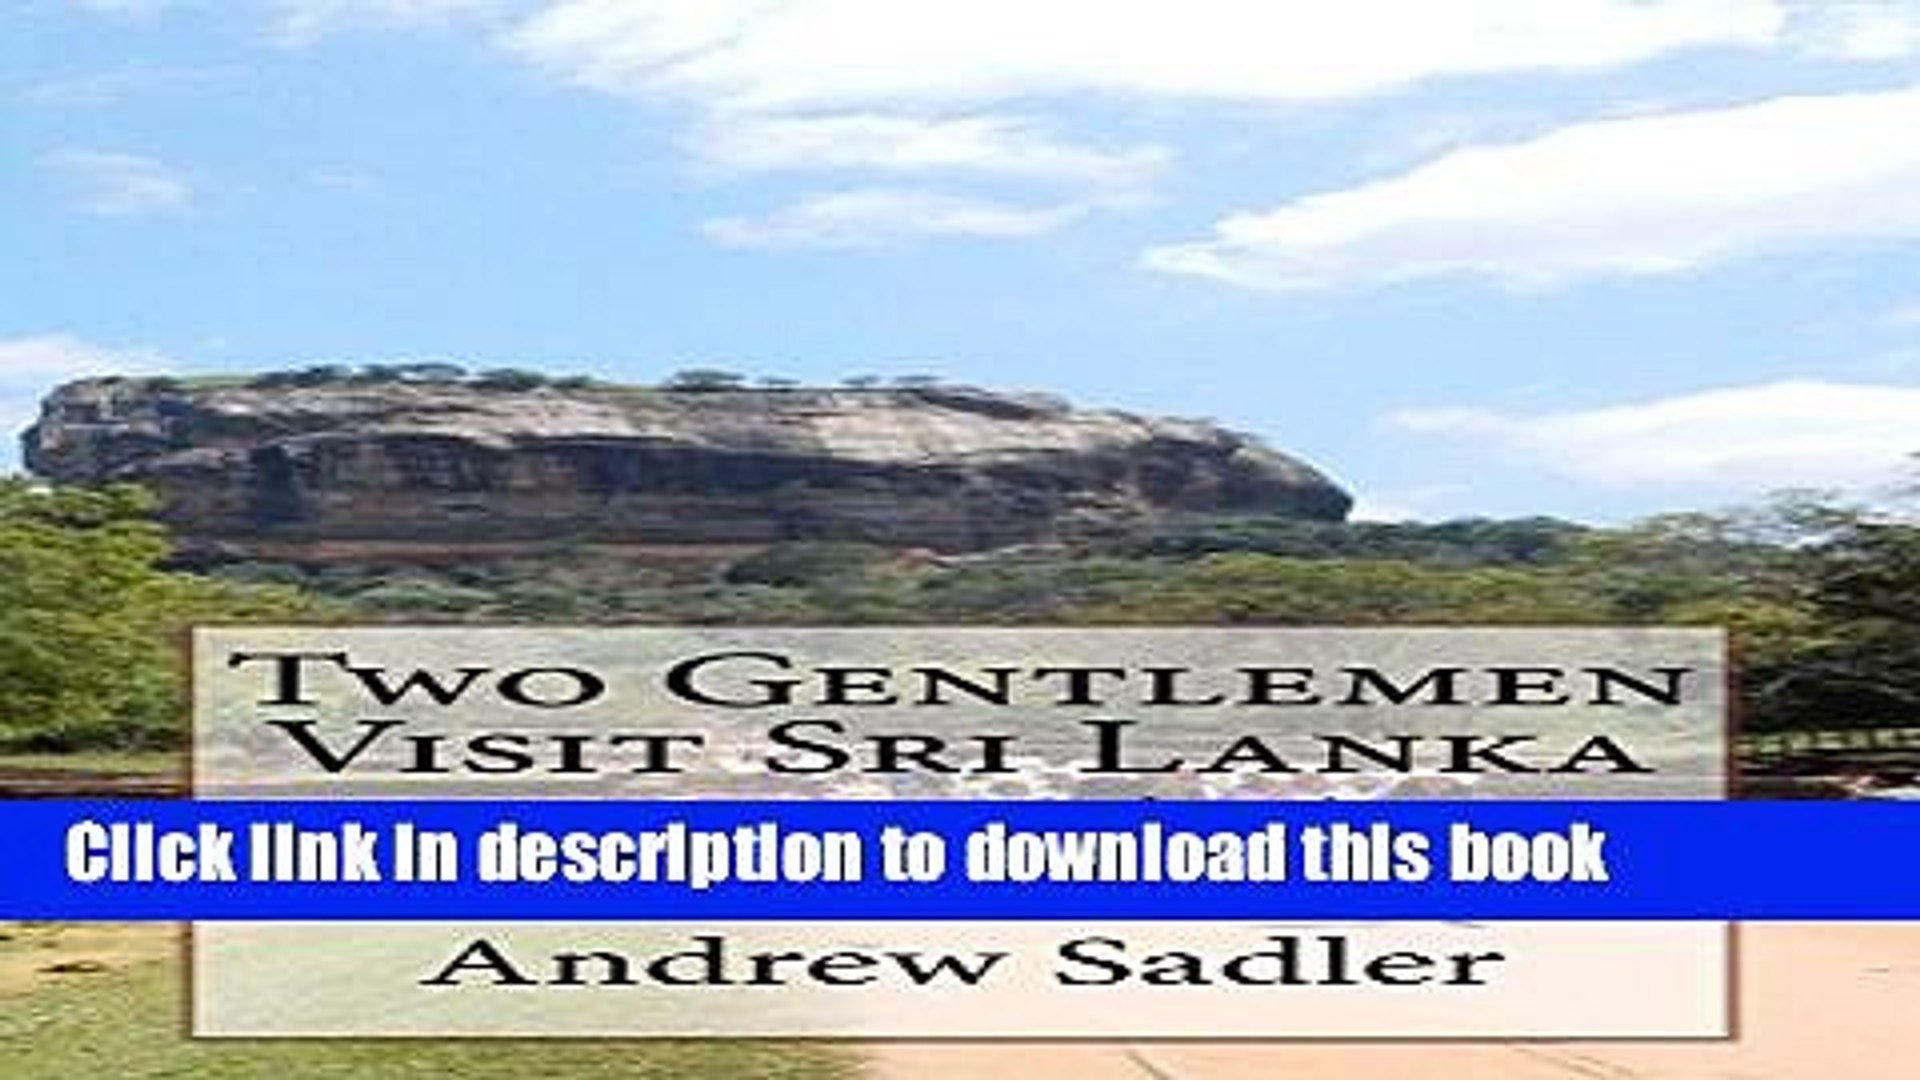 [Download] Two Gentlemen Visit Sri Lanka: A Visit to Colombo and Travel with a Kind Companion